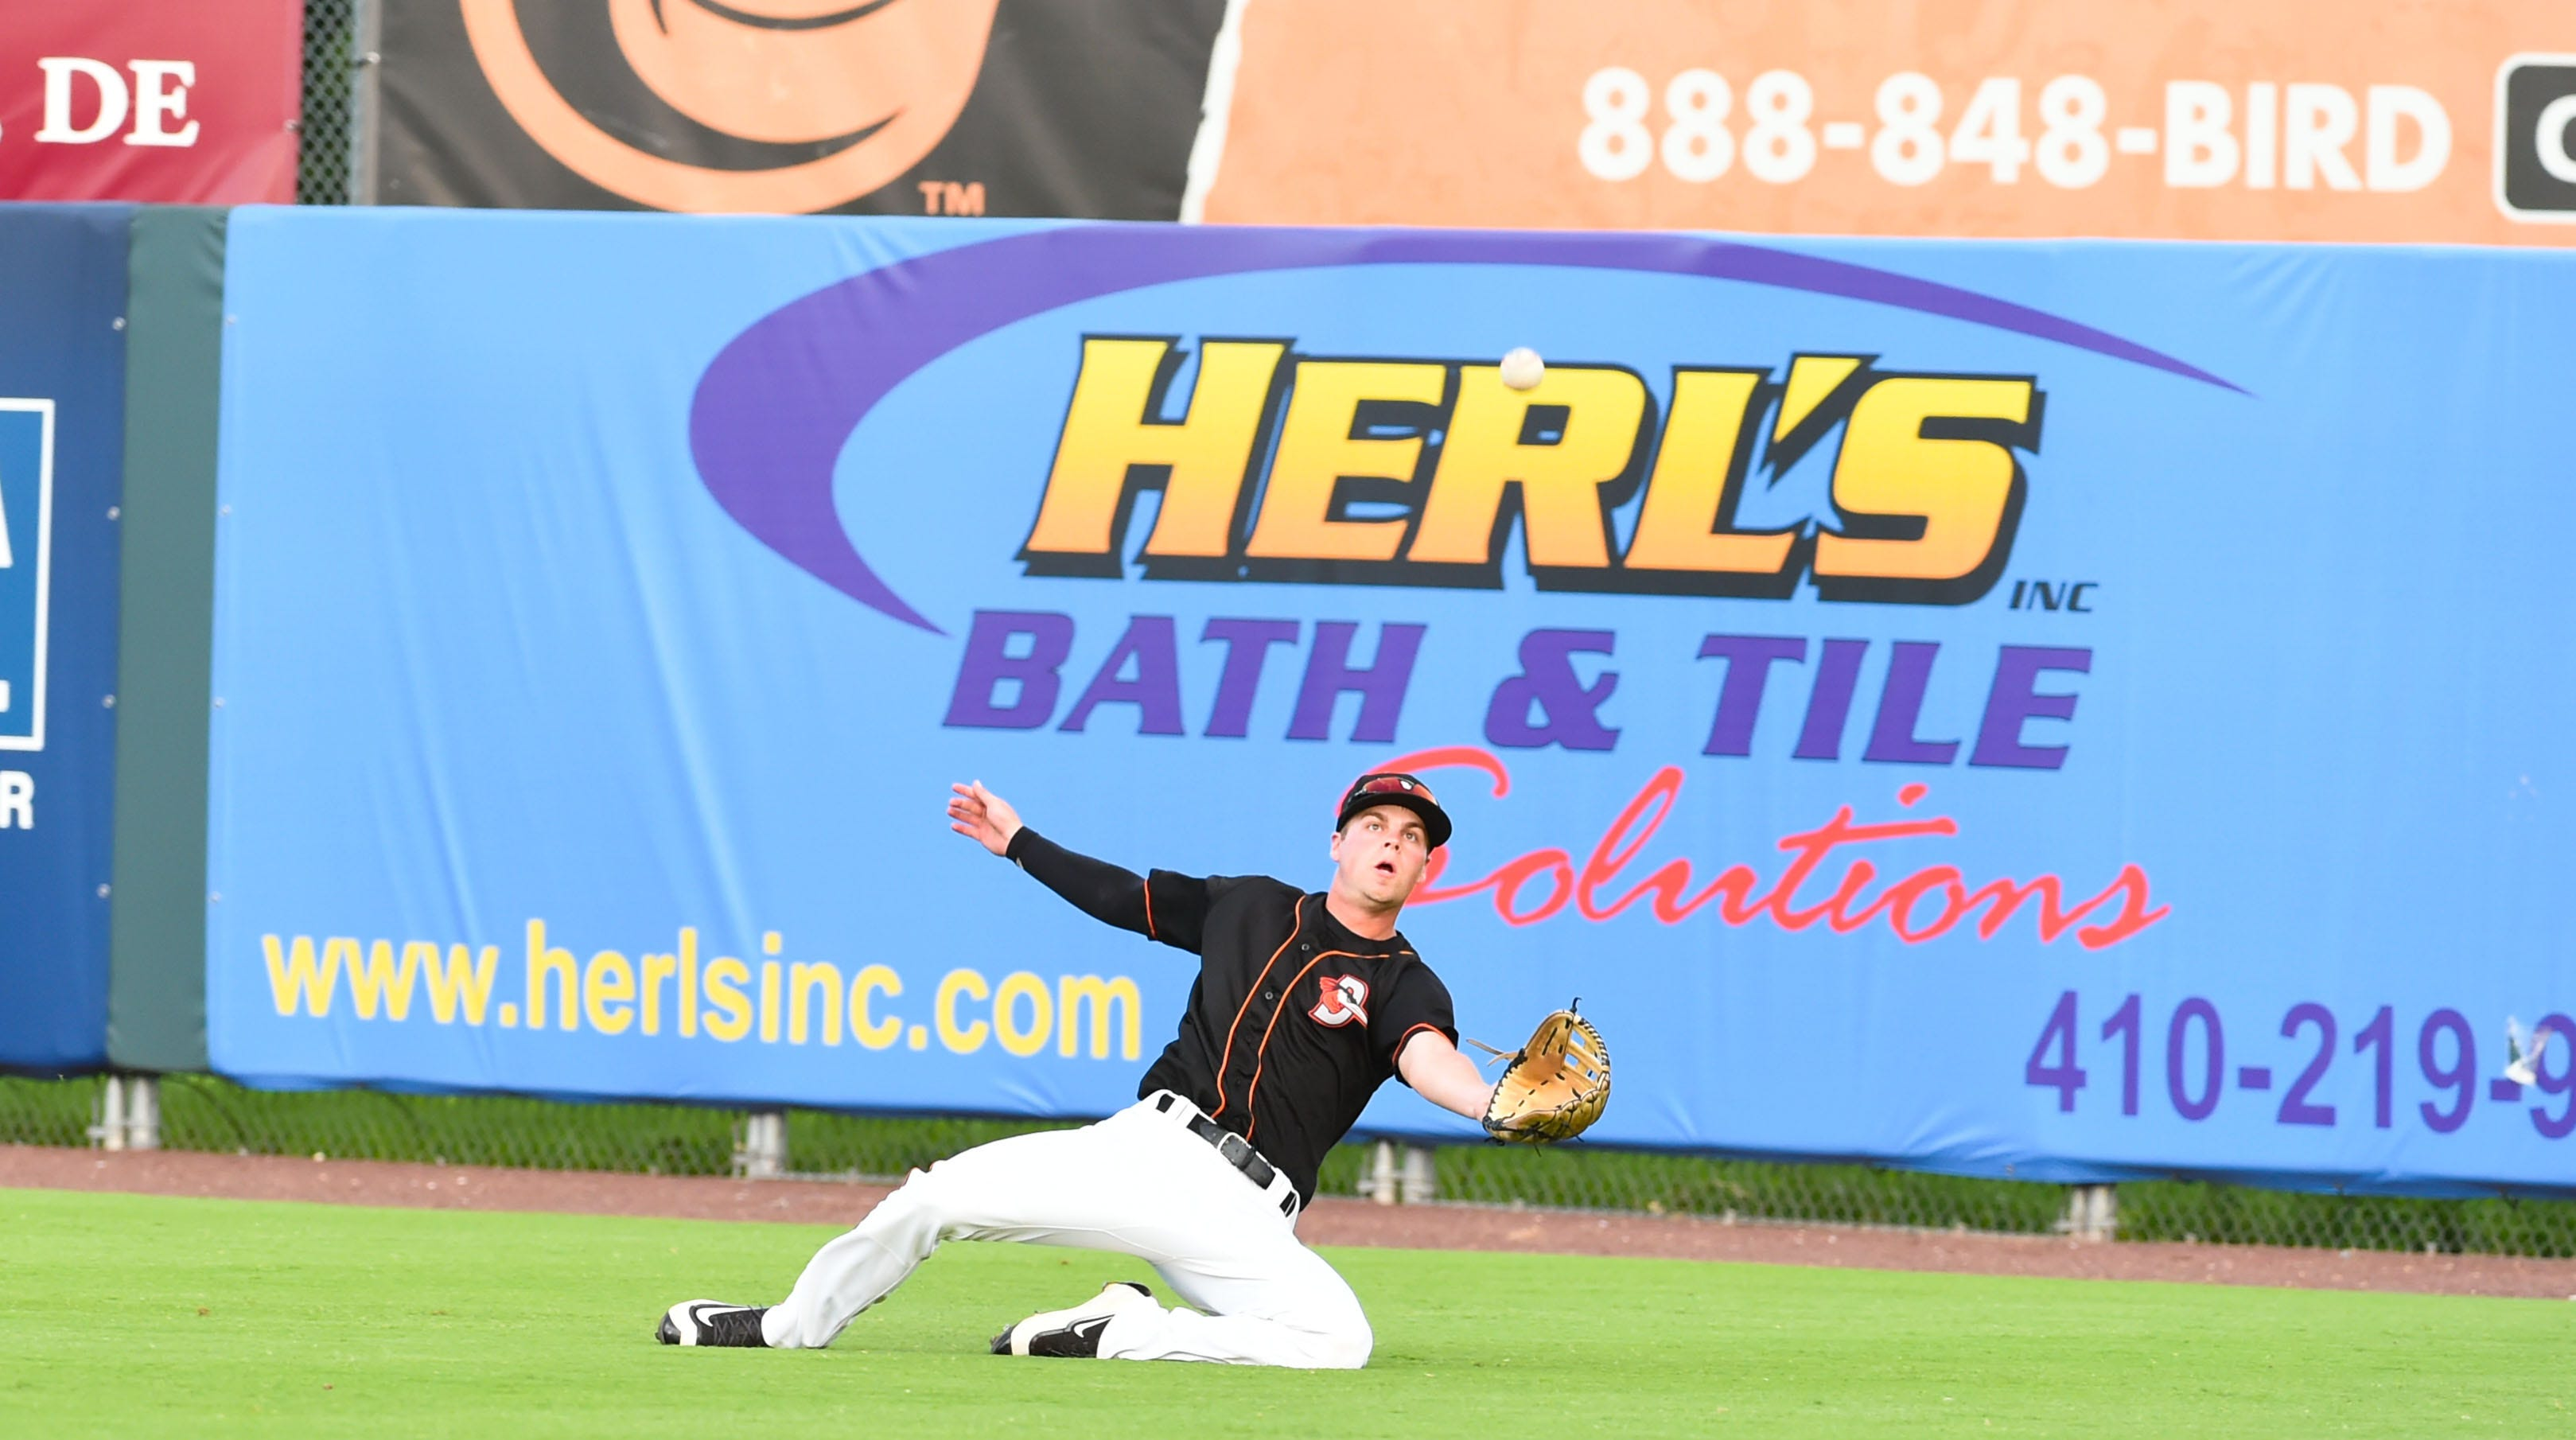 Delmarva Shorebirds' Will Robertson dives for a catch against the Lakewood BlueClaws on Wednesday, August 1, 2018 at the Arthur W. Perdue Stadium in Salisbury, Md.